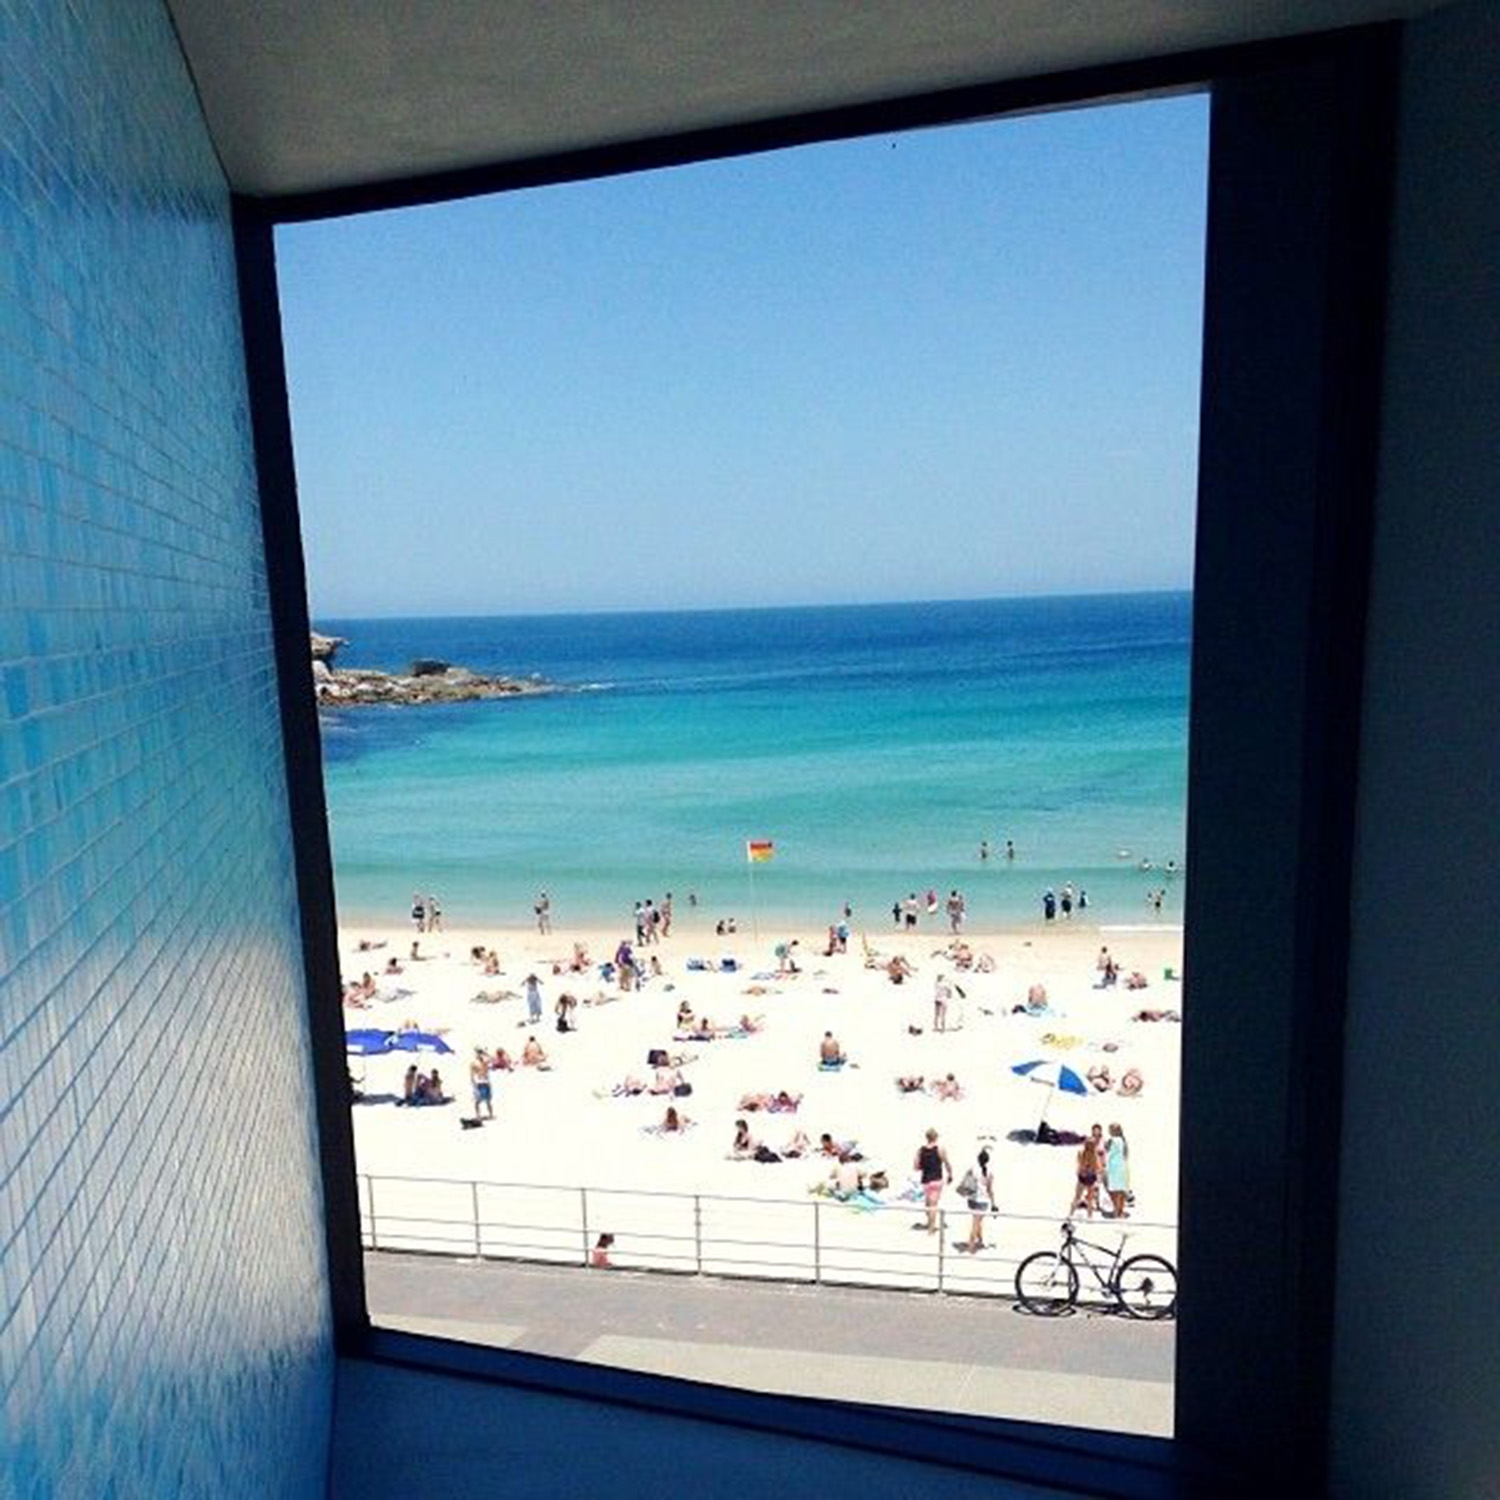 Looking out at the beach from a window in North Bondi Surf Club